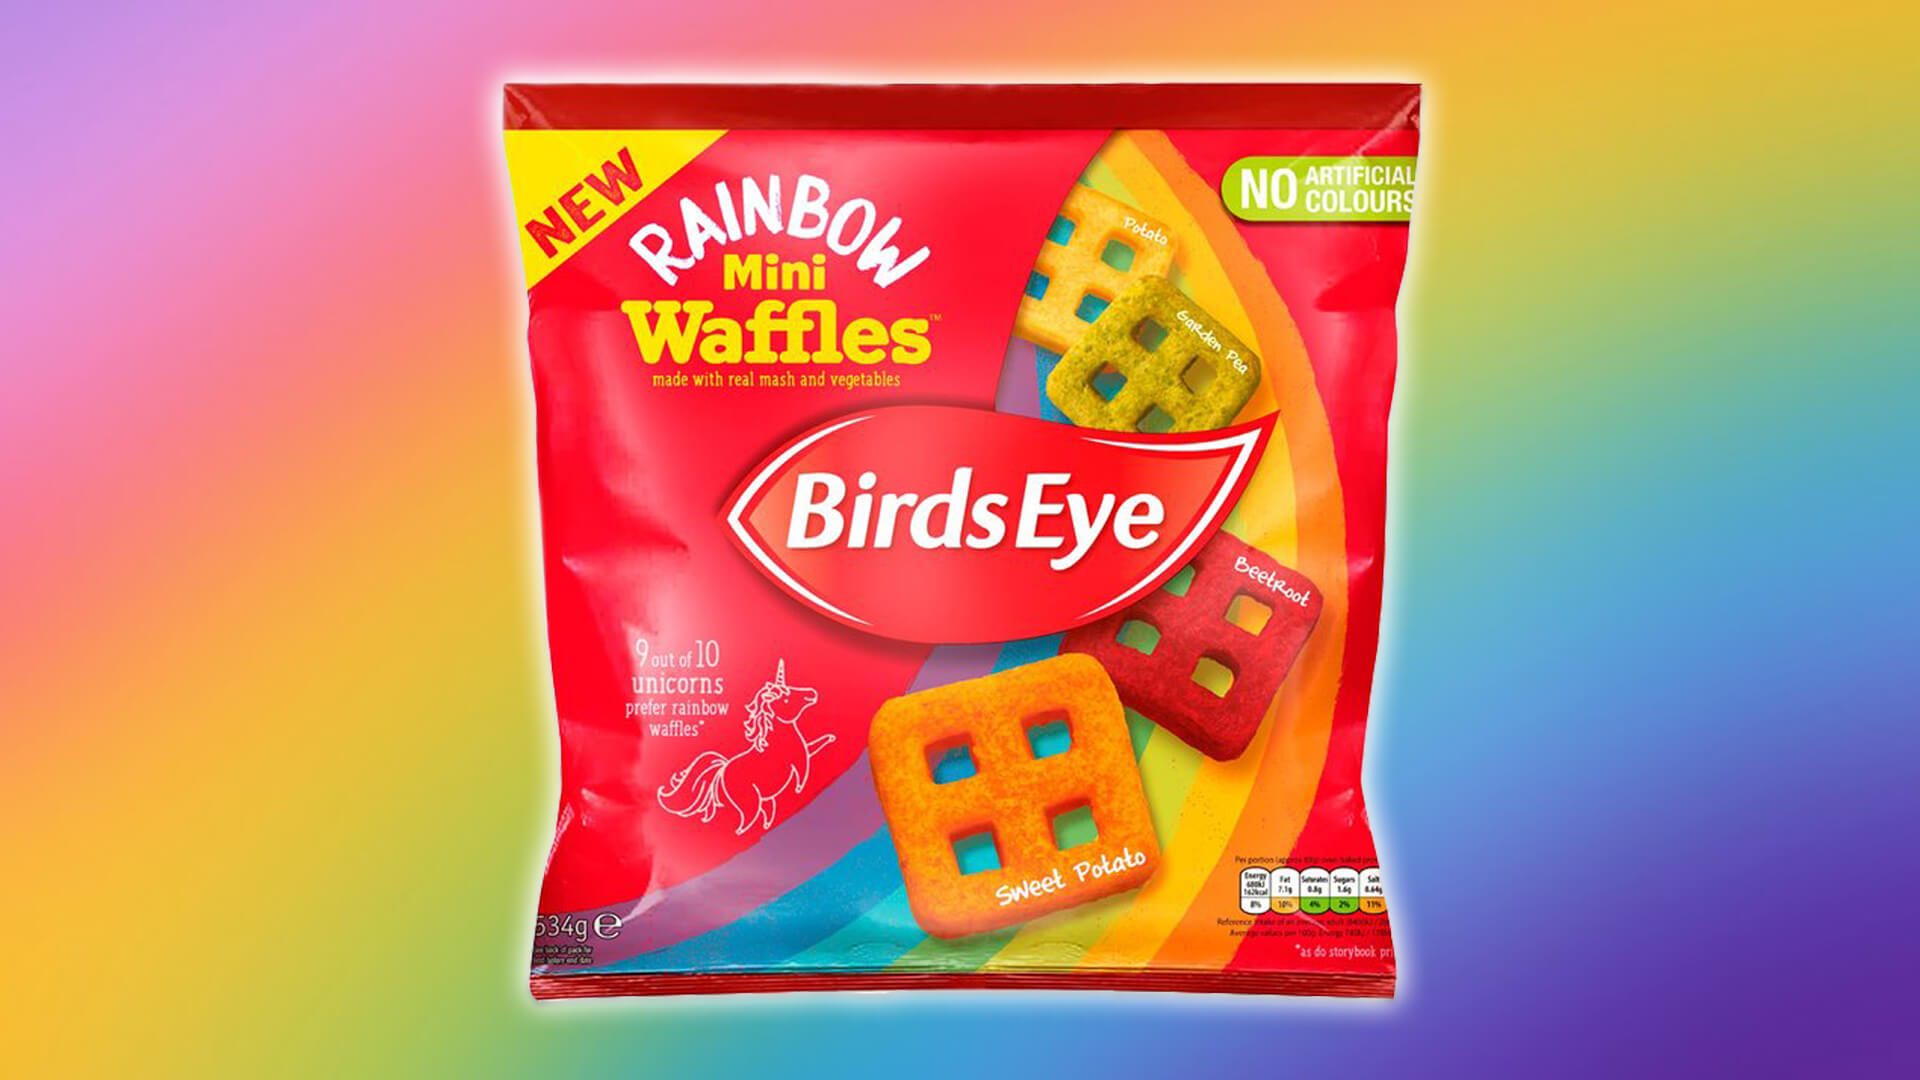 Birds Eye's New Vegan Rainbow Waffles Are Made With All the Vegetables